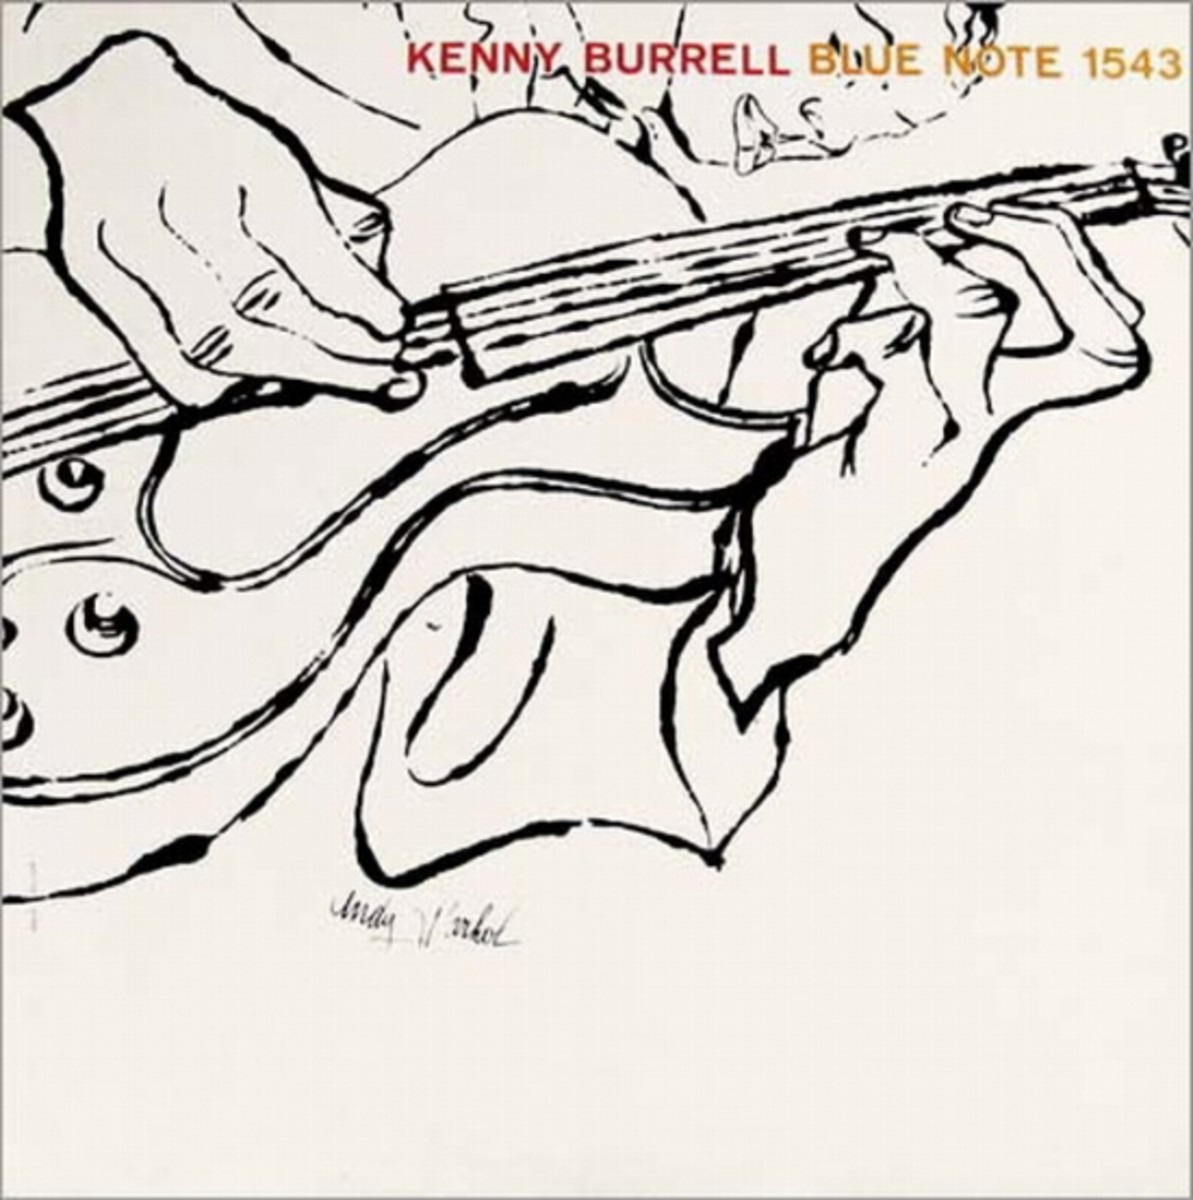 "Kenny Burrell, vol. 2 Blue Note Records BLP 1543 12"" LP Vinyl Record, Album Cover  Illustration by Andy Warhol"